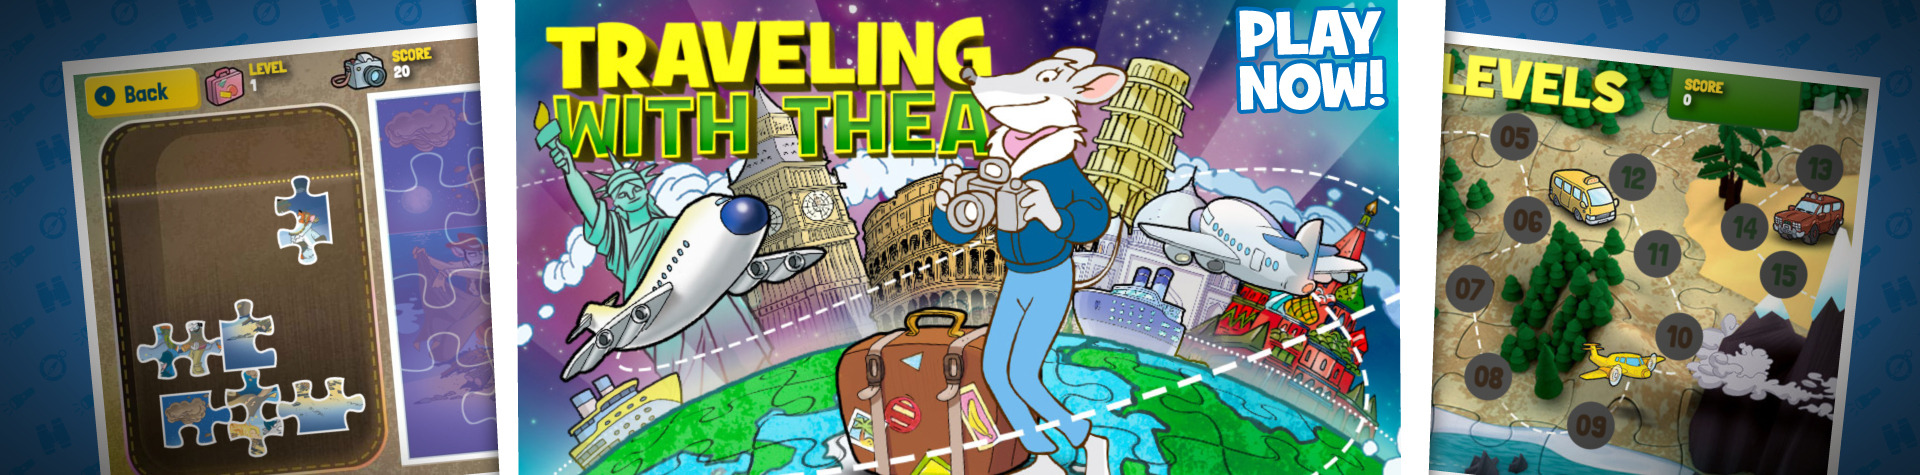 Traveling with Thea